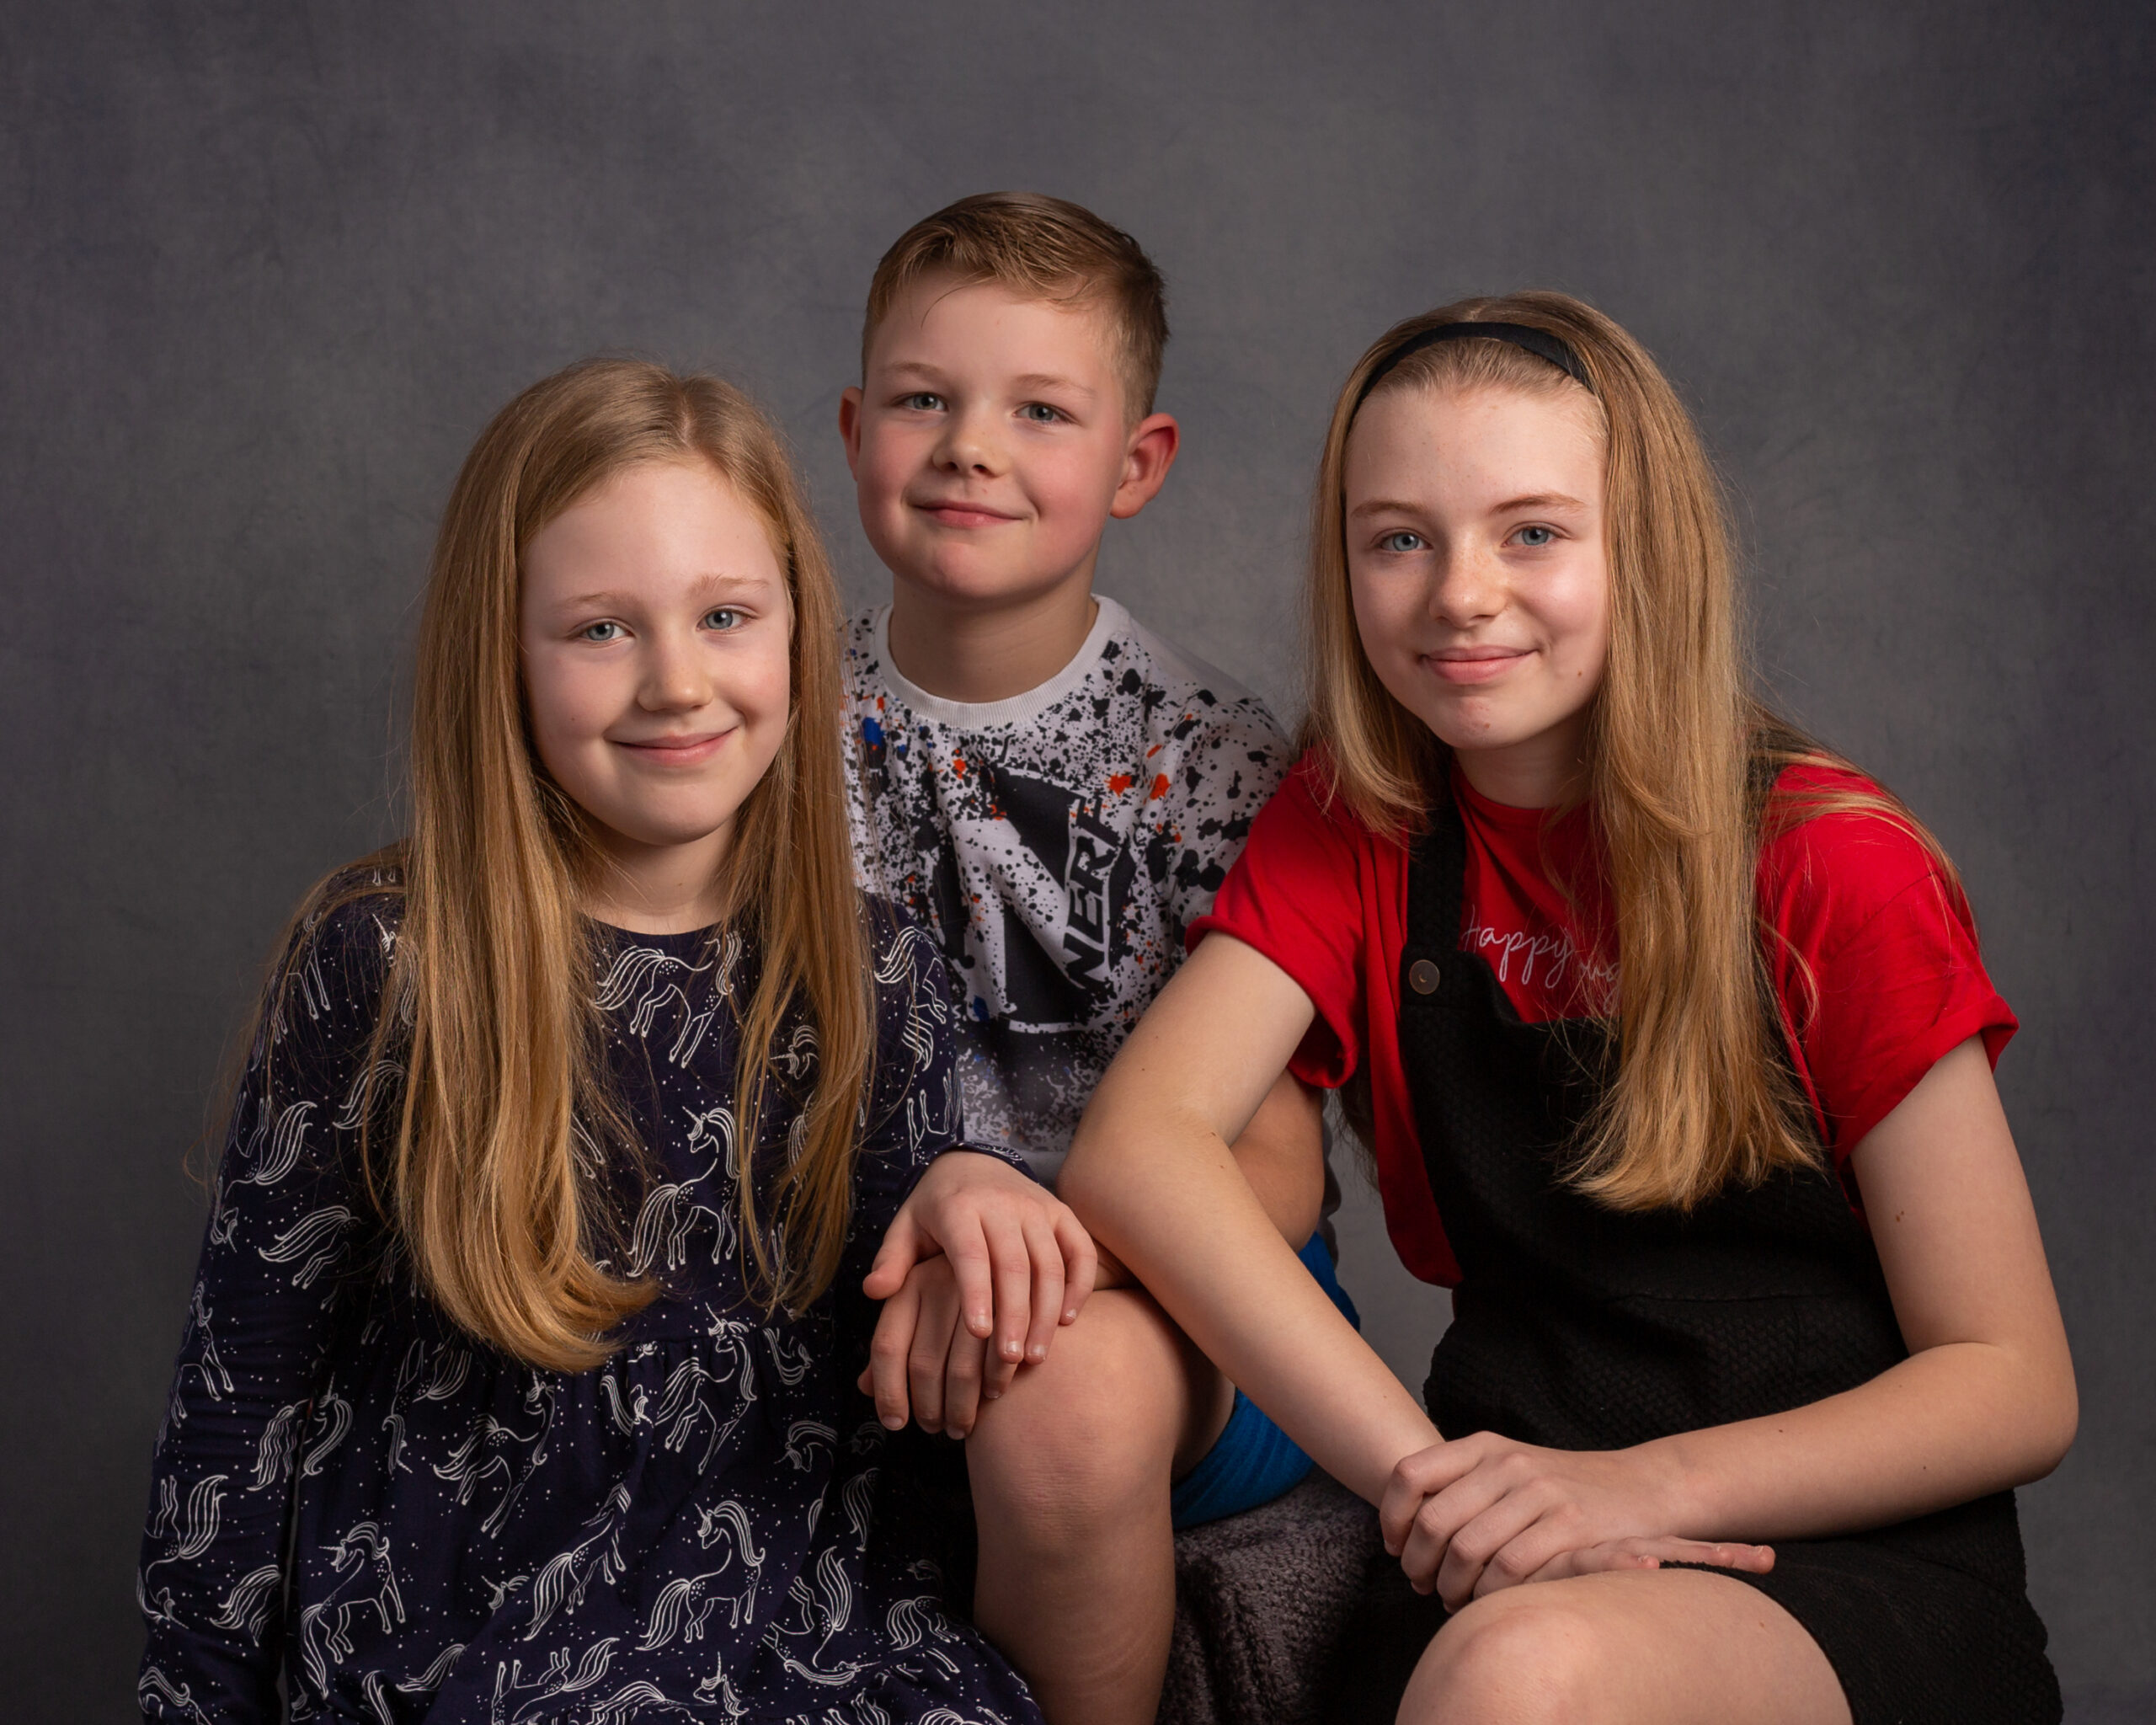 Family photographer Horsham